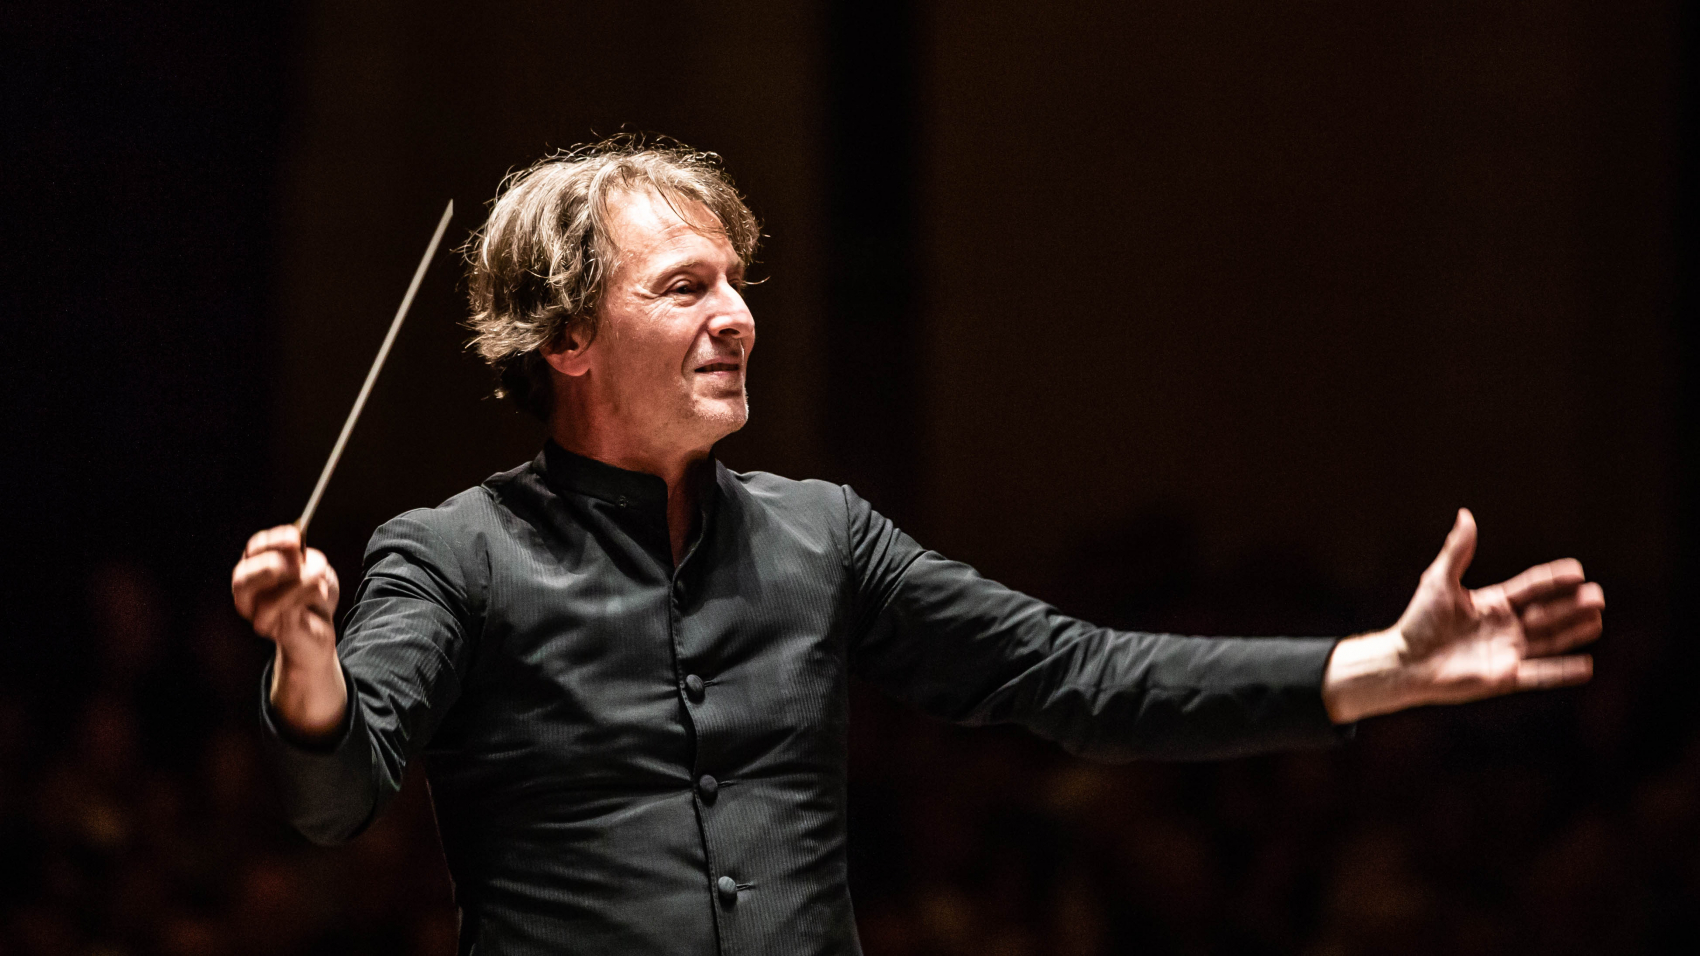 Chief Conductor Marc Albrecht crowned Conductor of the Year